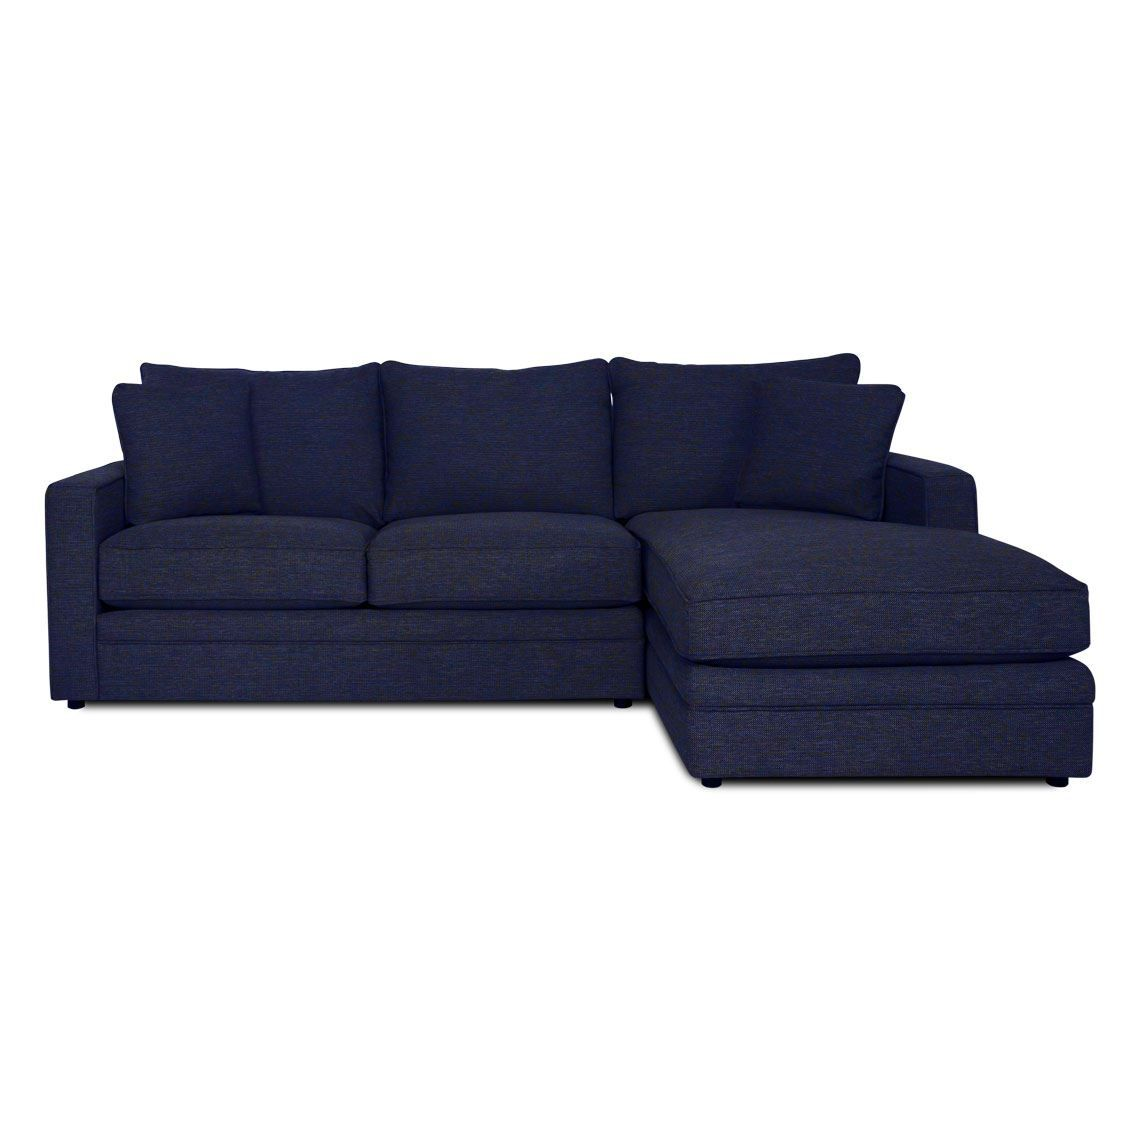 Andersen 2 5 Seat Fabric Modular W Right Chaise Size W 262cm X D 175cm X H 100cm In Navy Blue Fabric Foam Fibre Freedom Modular Sofa Modular Couch Sofa